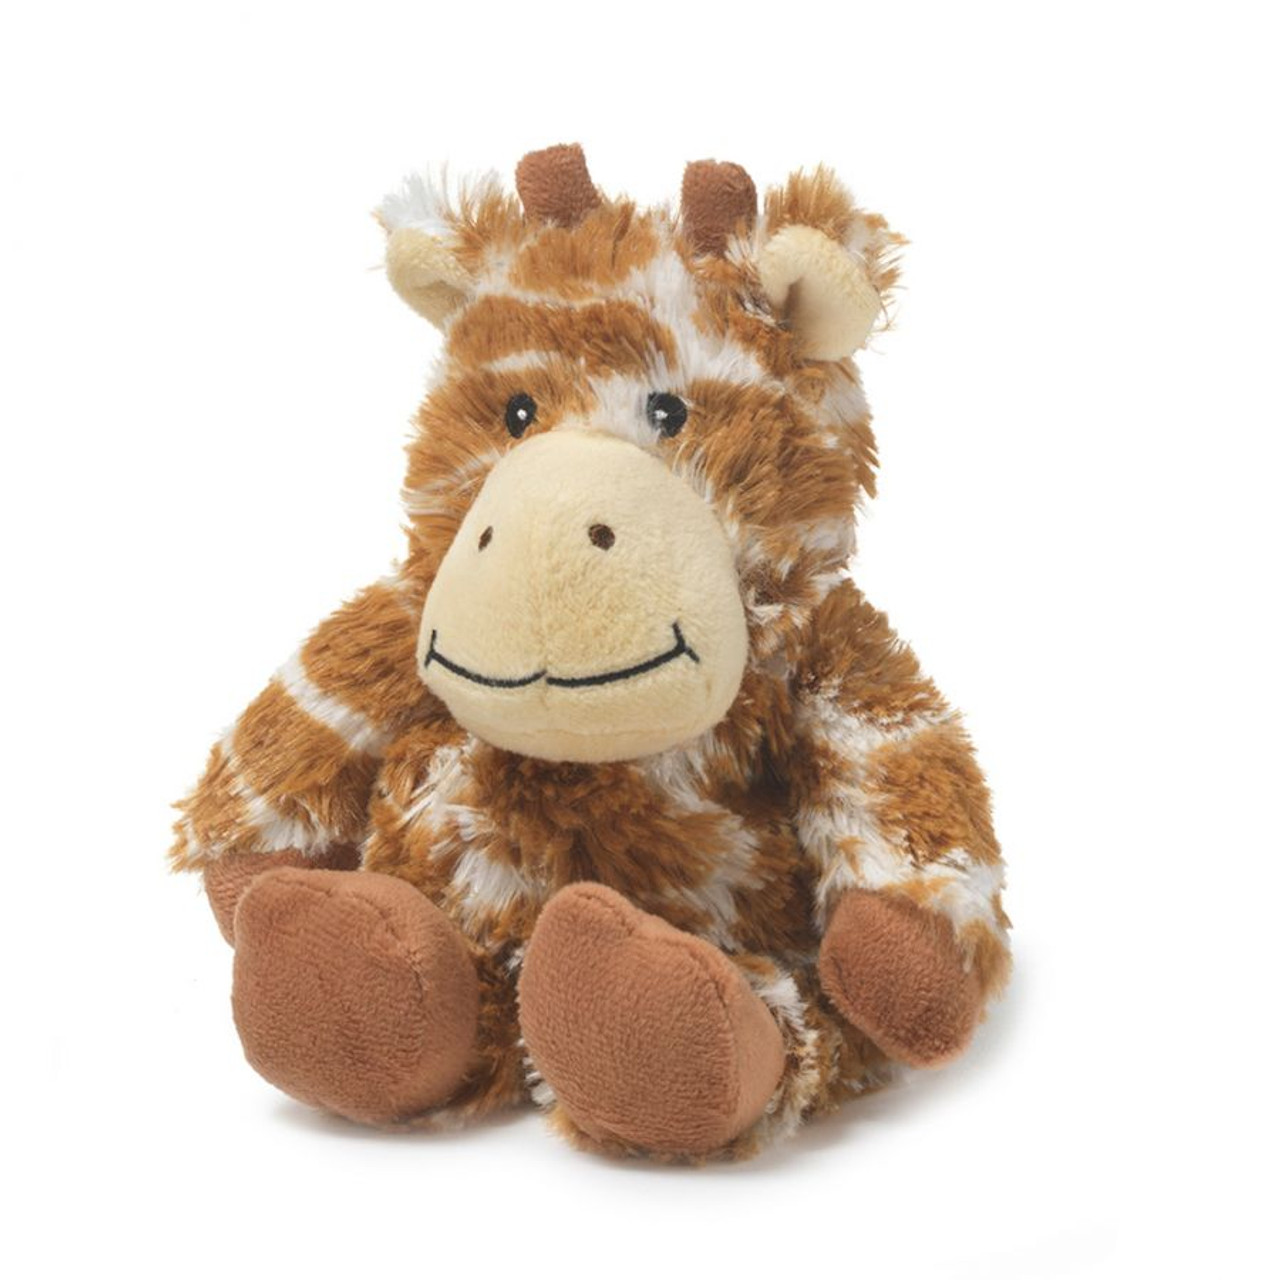 "All age groups can have hours of fun using their Warmies® Cozy Plush Junior Giraffe, knowing that they can be warm all night long.   The 9"" Junior Giraffe is fully microwavable yet entirely safe to hold tight after taking a bath, putting on PJs, and heading up the stairs to bed."